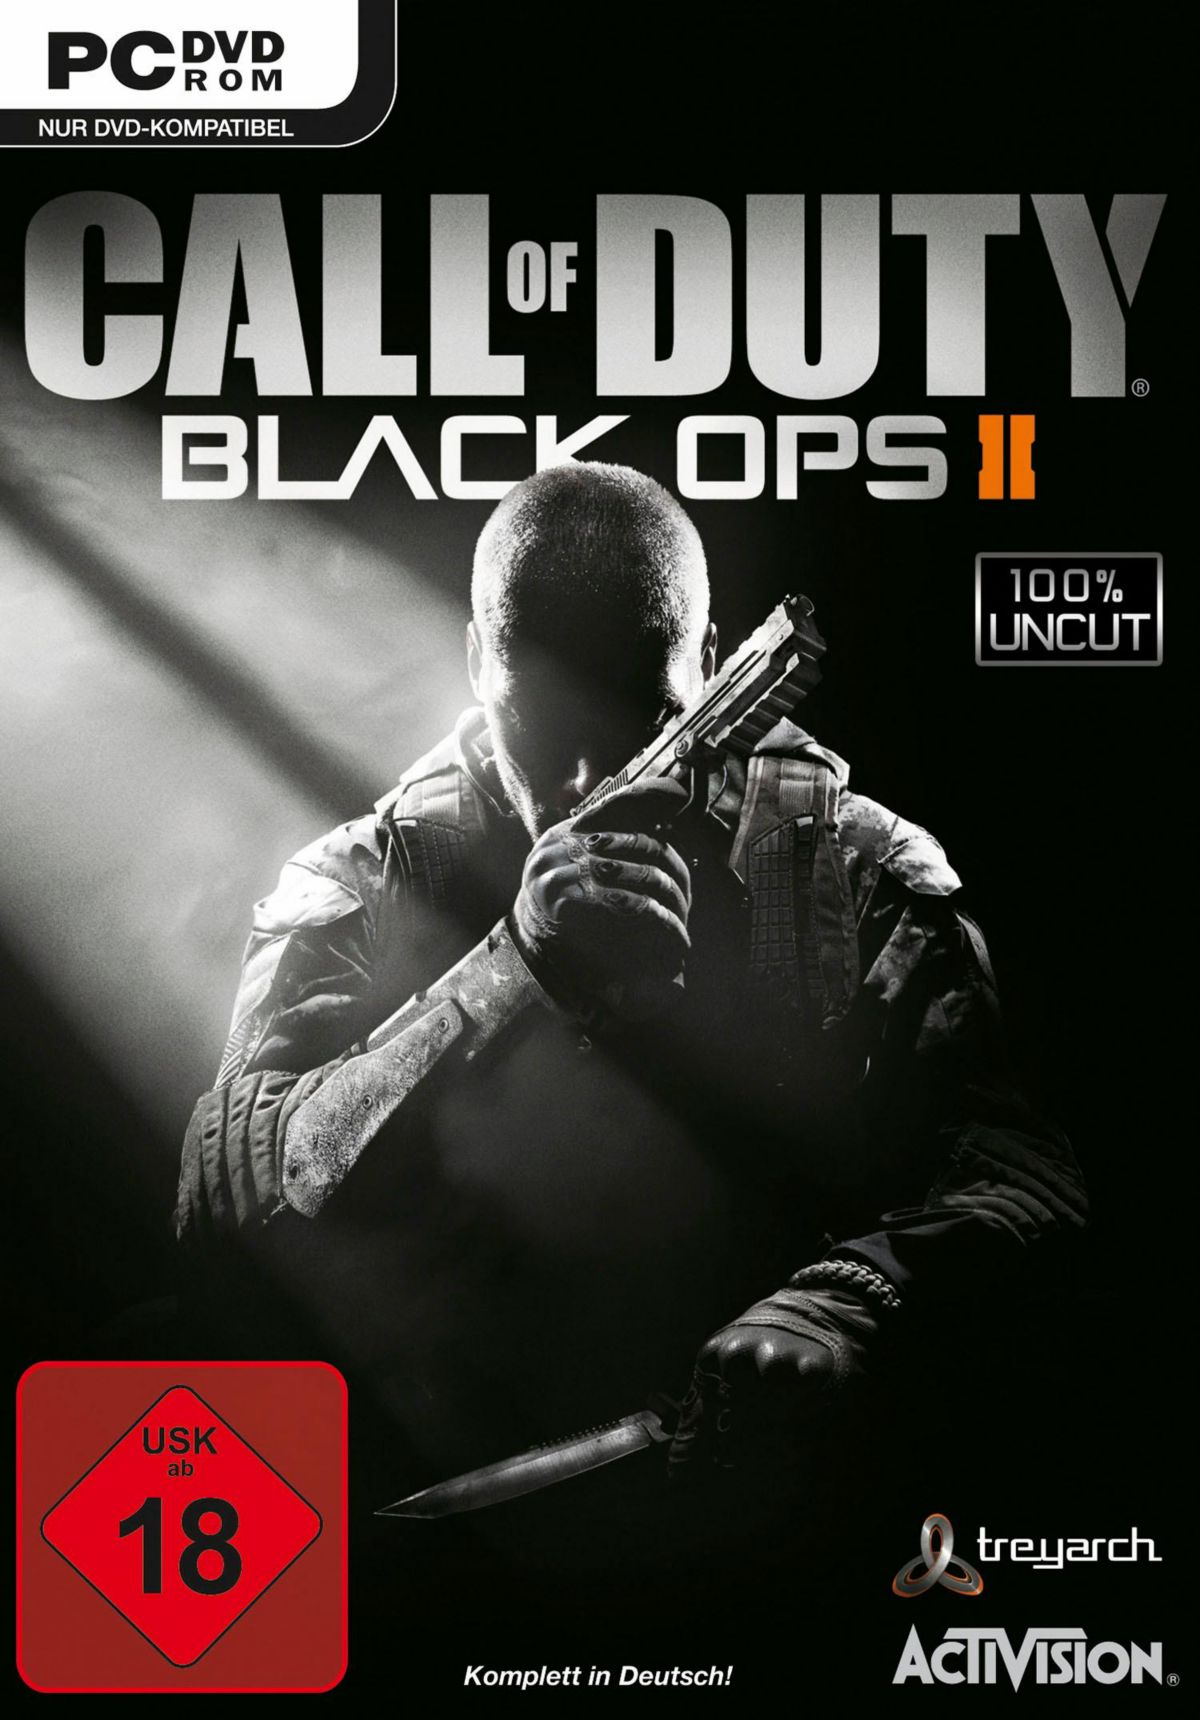 Call of Duty: Black Ops II PC (DVD-ROM)